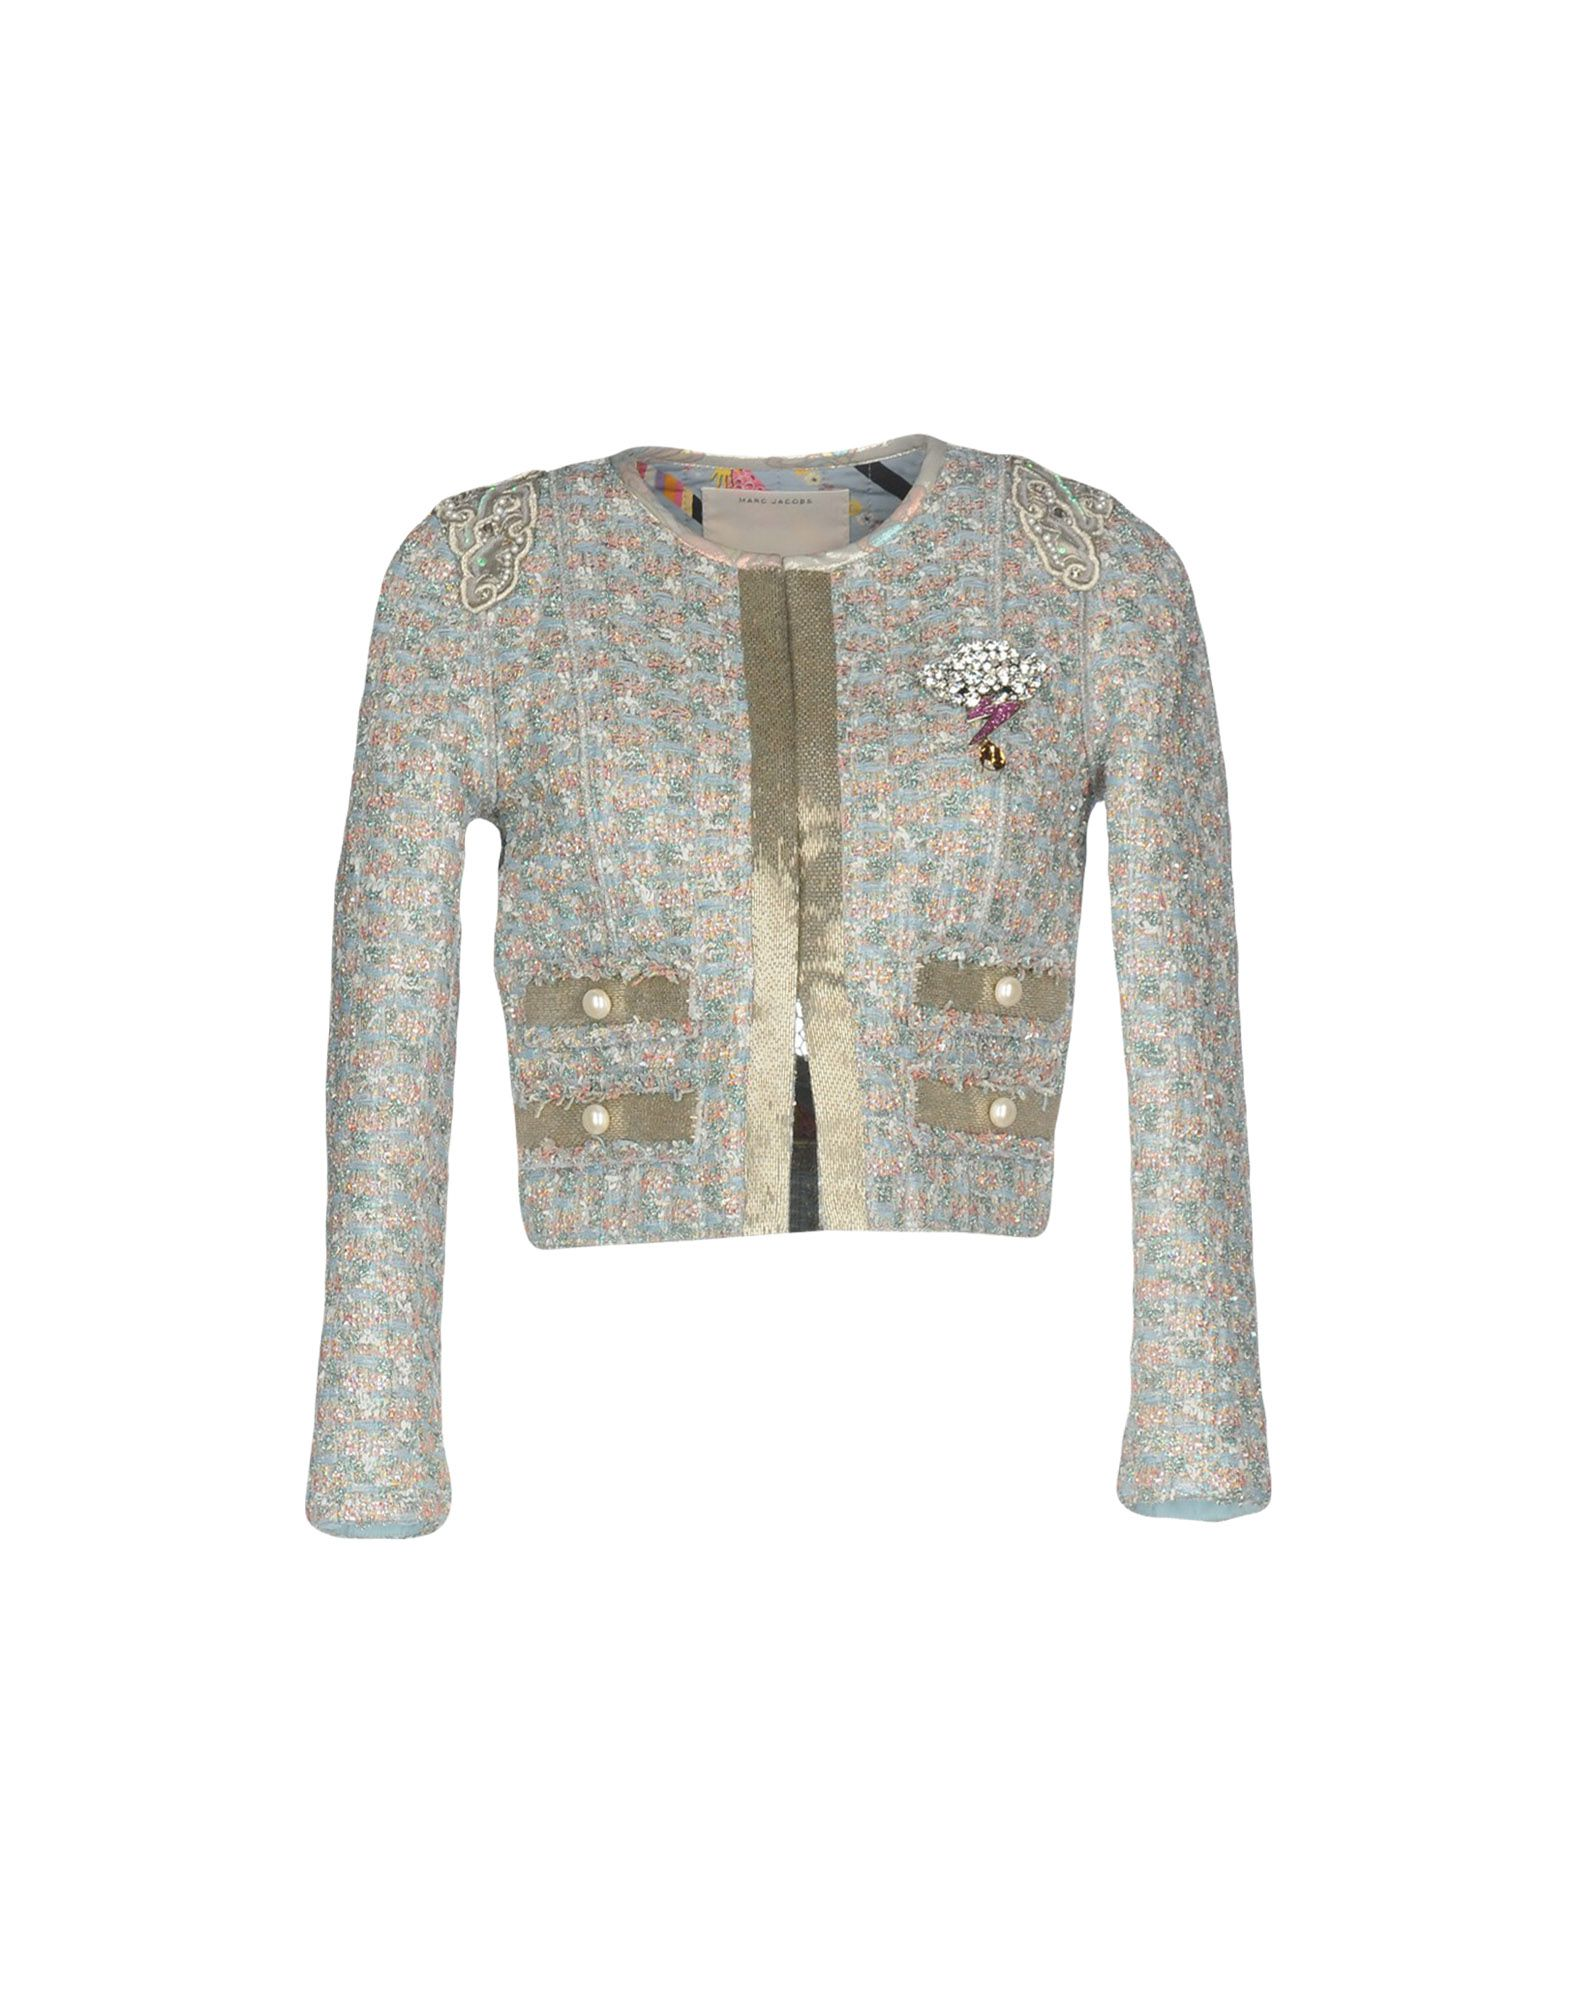 Giacca Marc Jacobs Donna - Acquista online su